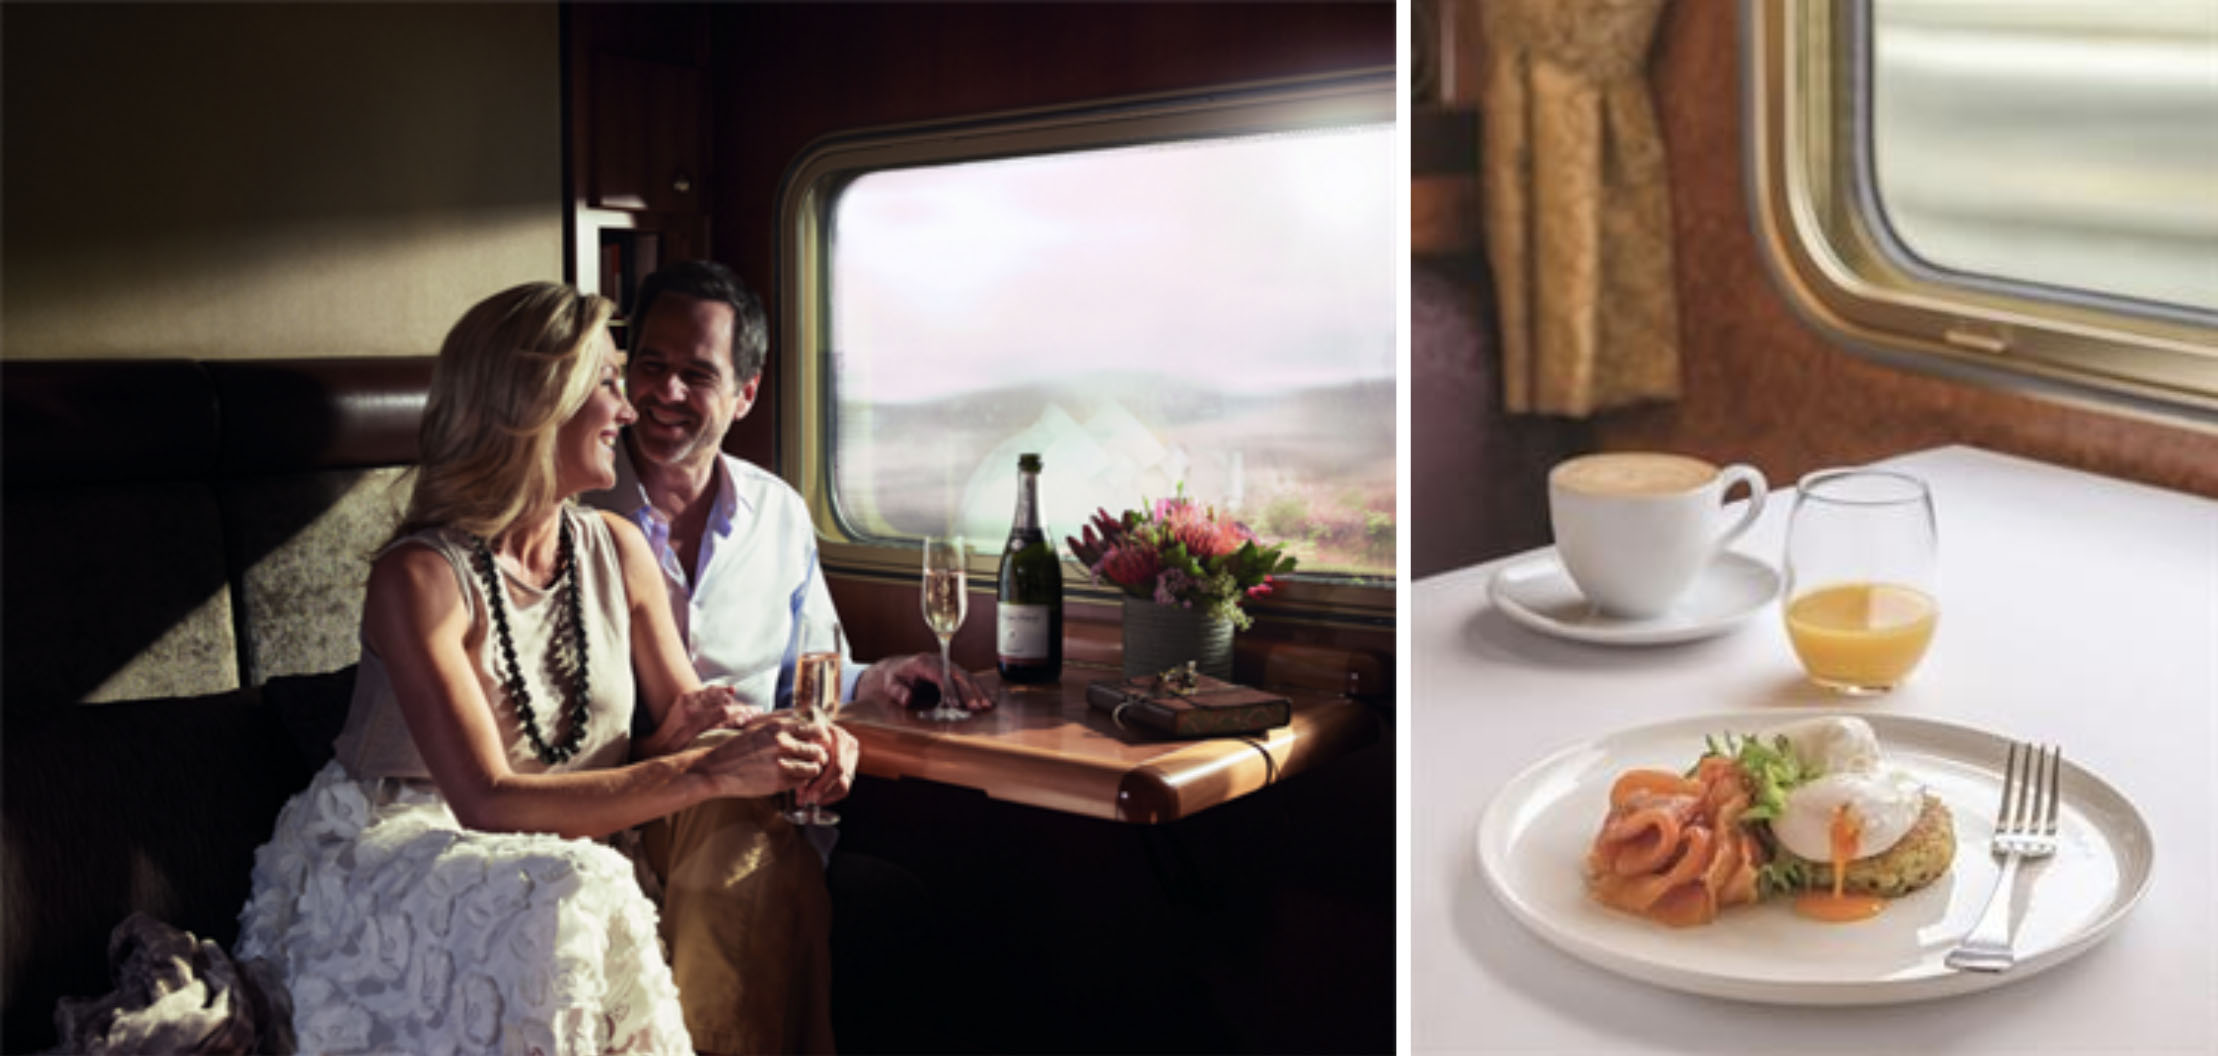 The Indian Pacific - Great Southern Rail Dining